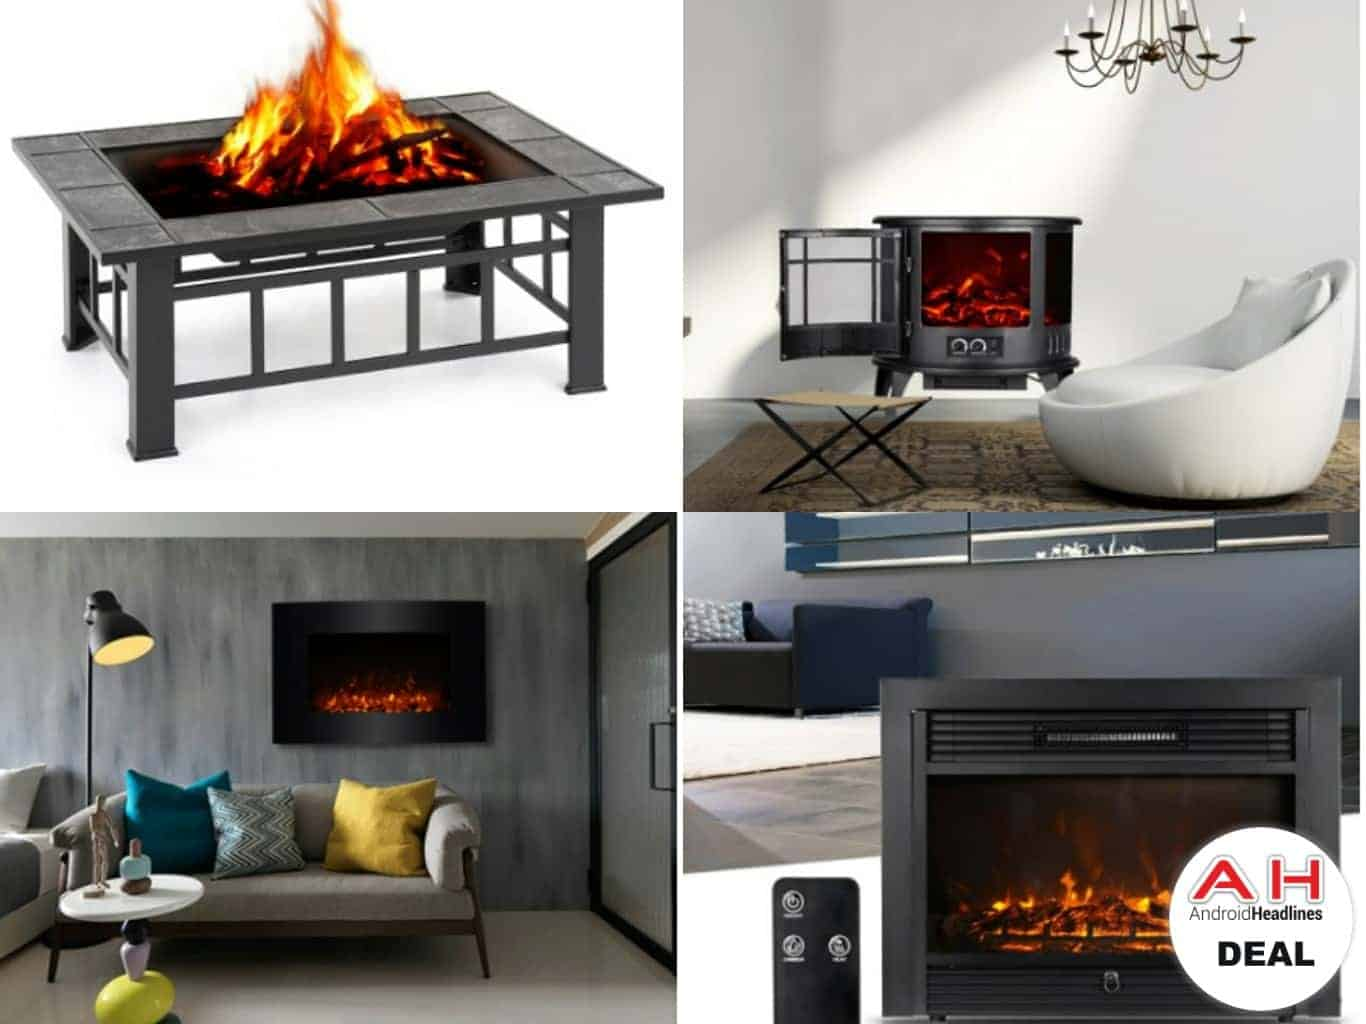 northwest electric steel sale mount home fireplace stainless with amazon com on and inch wall dp improvement remote by